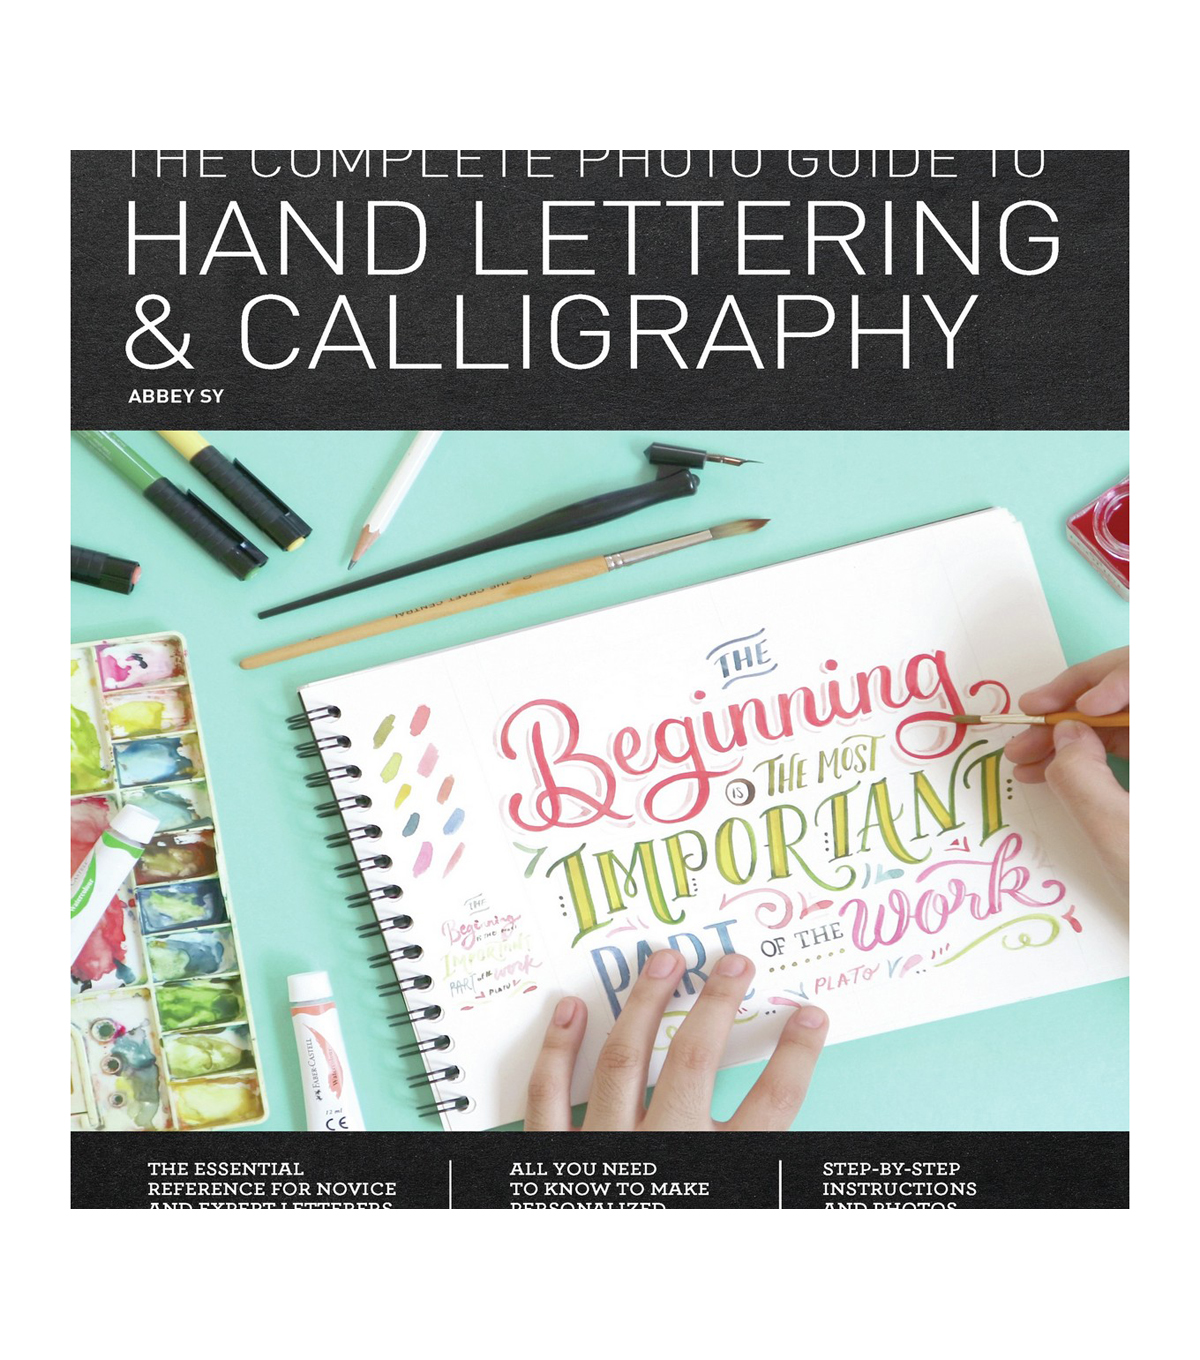 The Complete Photo Guide to Hand Lettering & Calligraphy Book